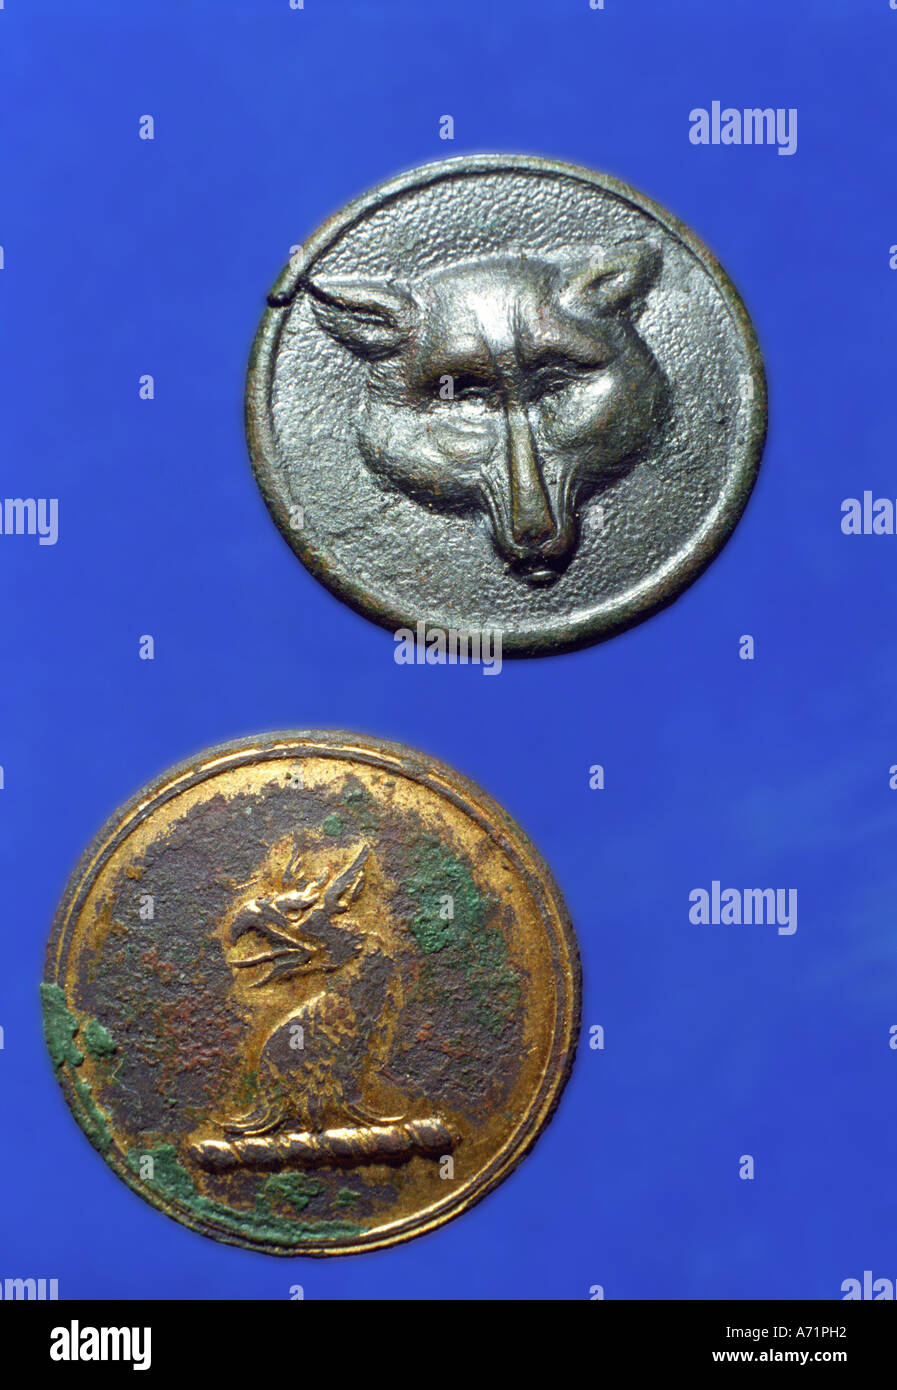 ANTIQUE Livery Buttons - Stock Image